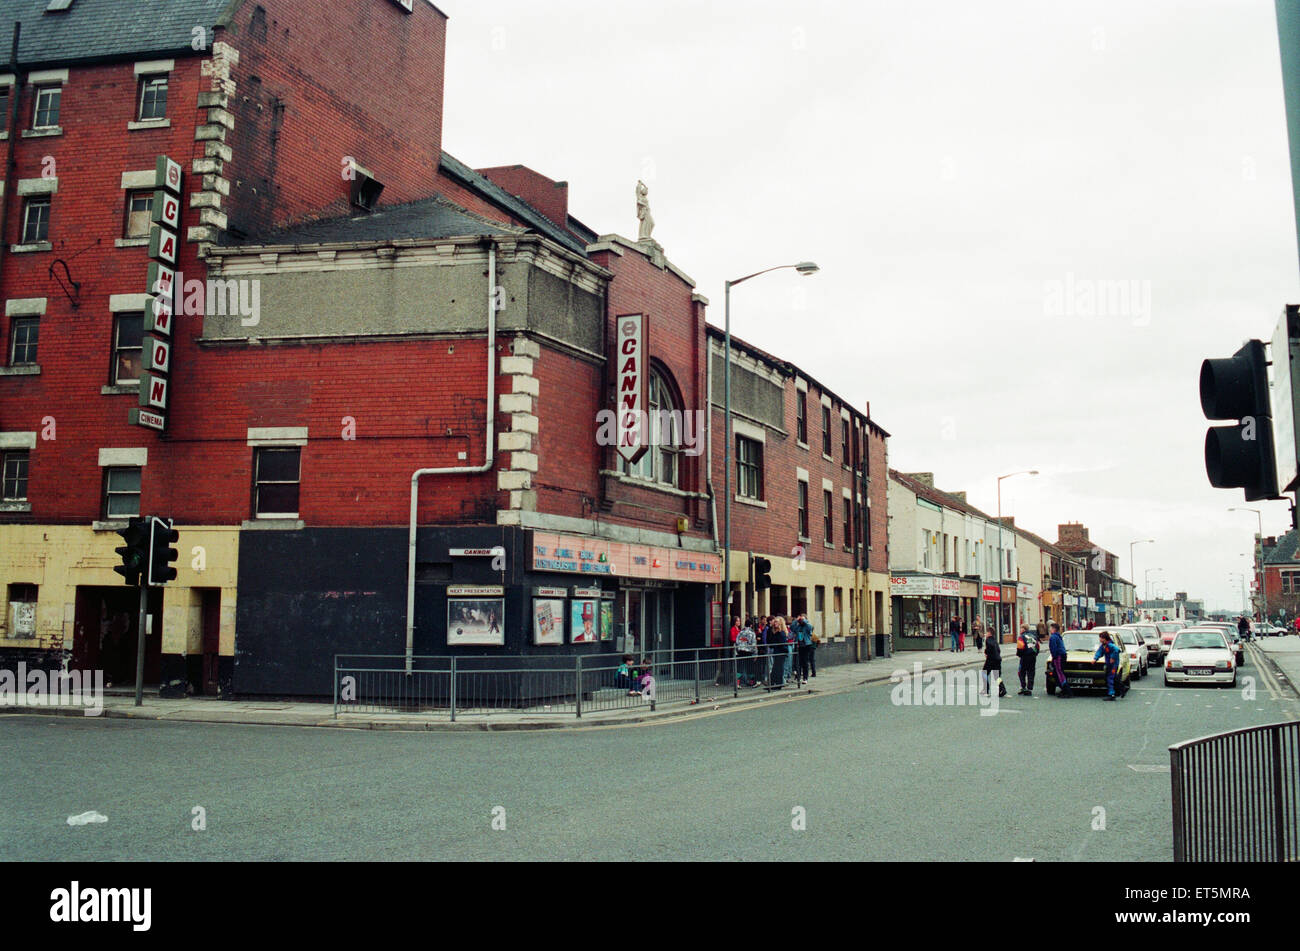 Cannon Cinema and Shops, along Prince Regent Street, Stockton, due to be demolished, Pictured 6th April 1993. - Stock Image